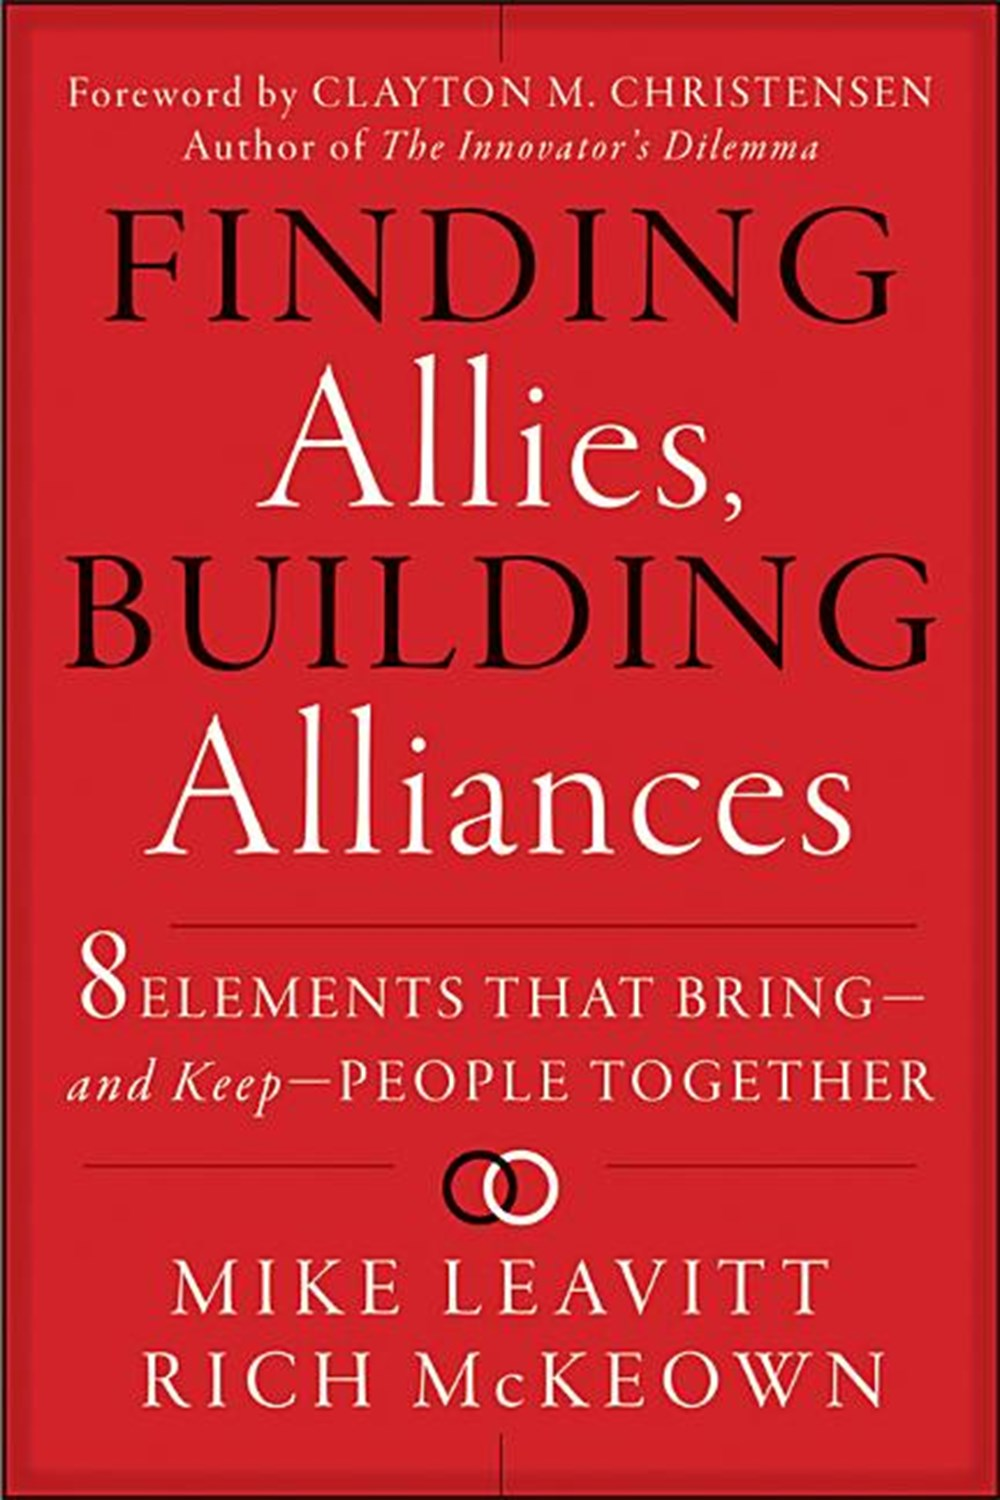 Finding Allies, Building Alliances 8 Elements That Bring--And Keep--People Together